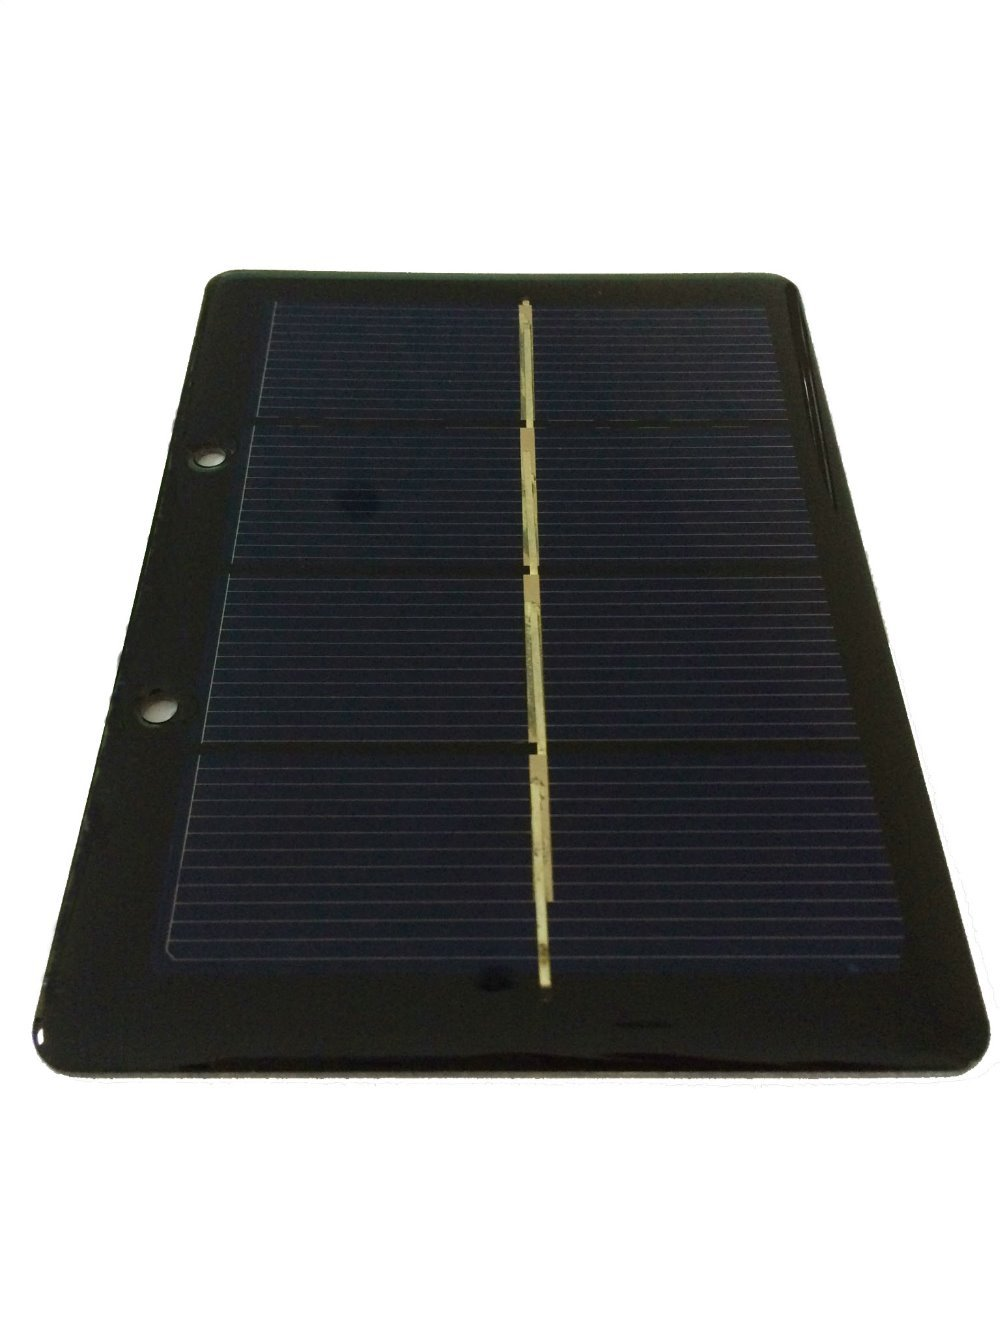 Solarparts 5pcs 2V 600mA Epoxy Resin Polycrystalline Solar Modules mini factory selling price solar cell panel system kit toys